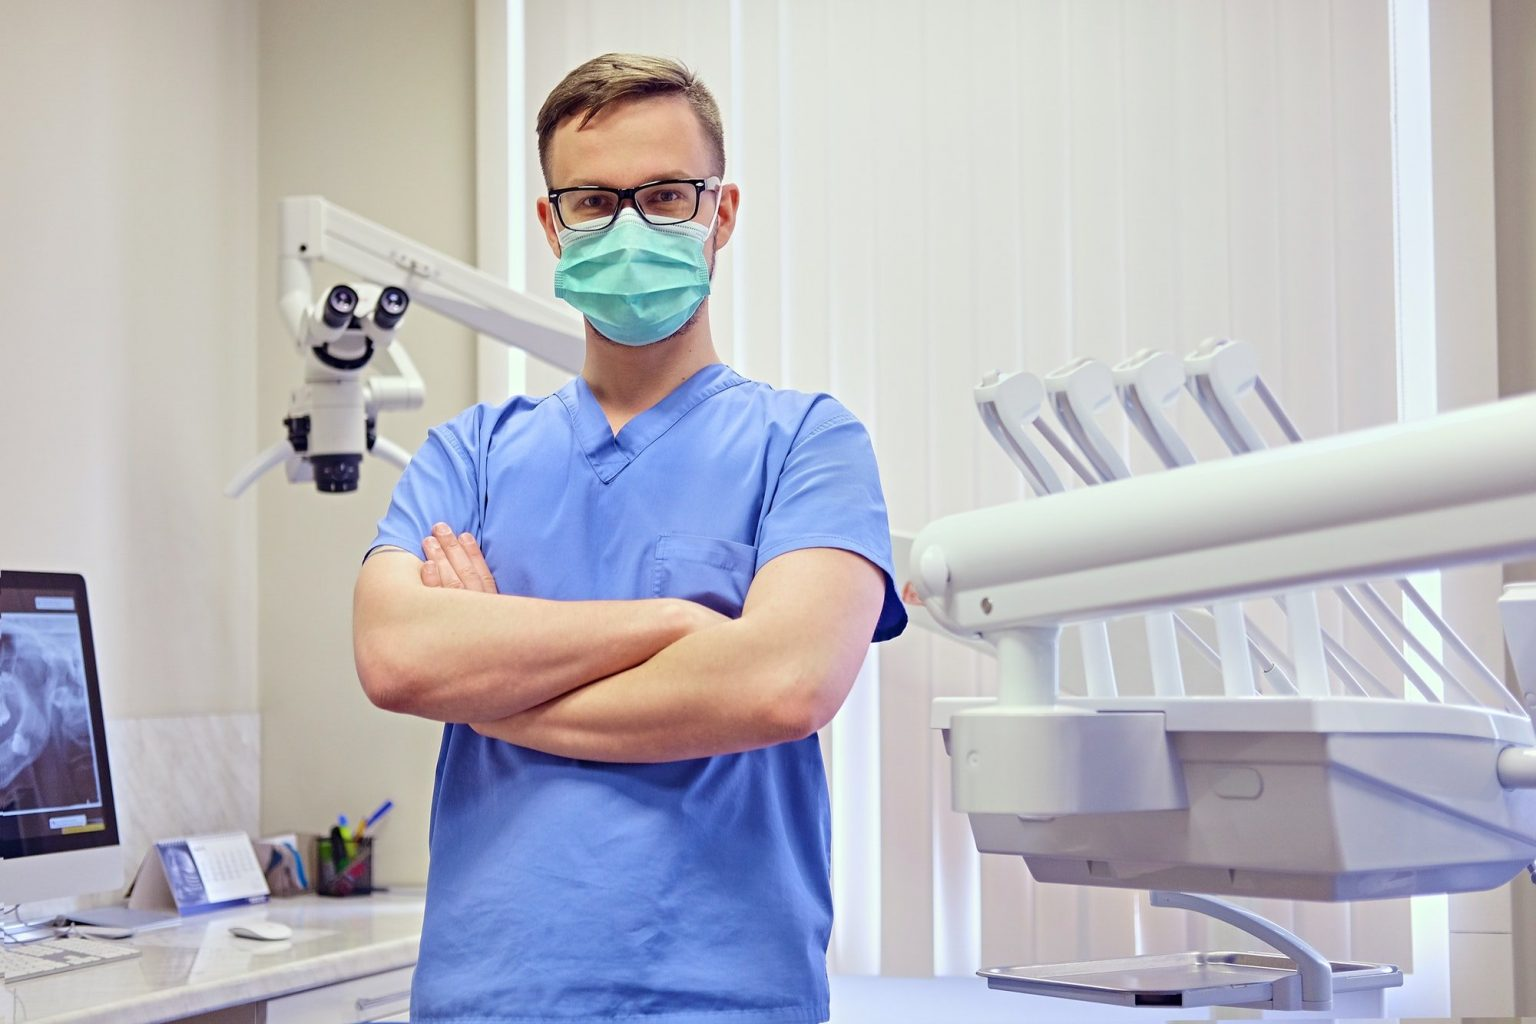 dentist in a room with medical equipment on background